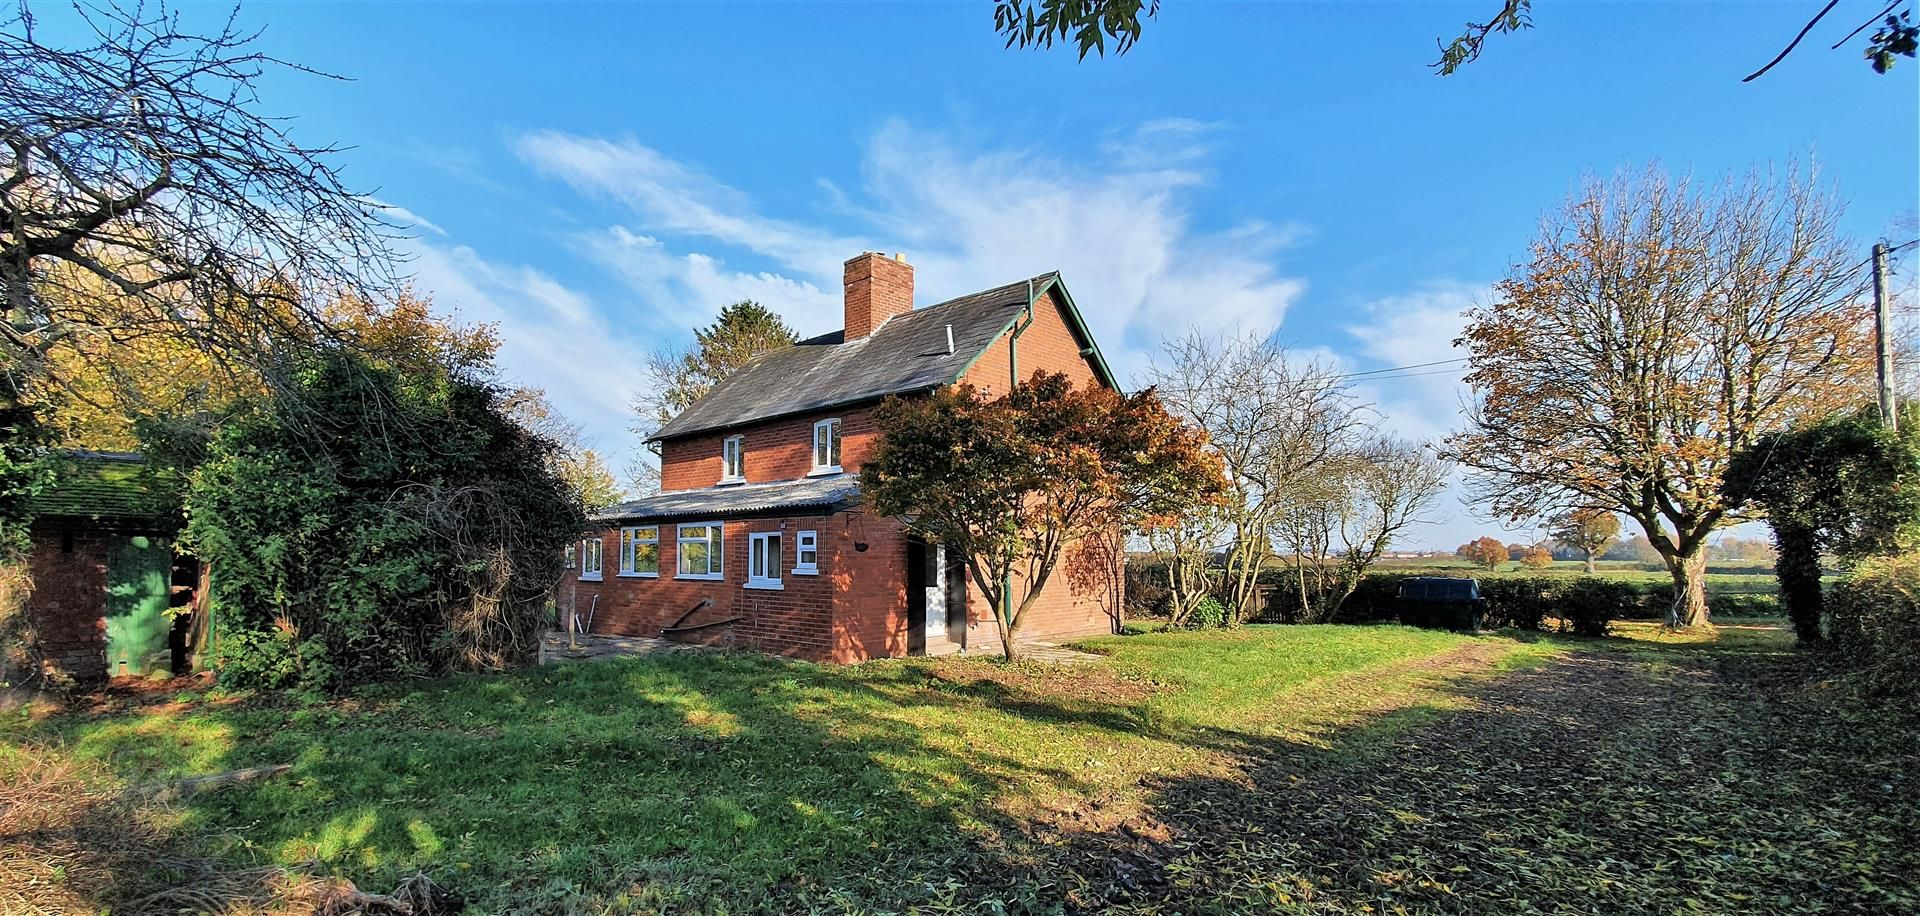 4 bed house to rent in Breinton - Property Image 1